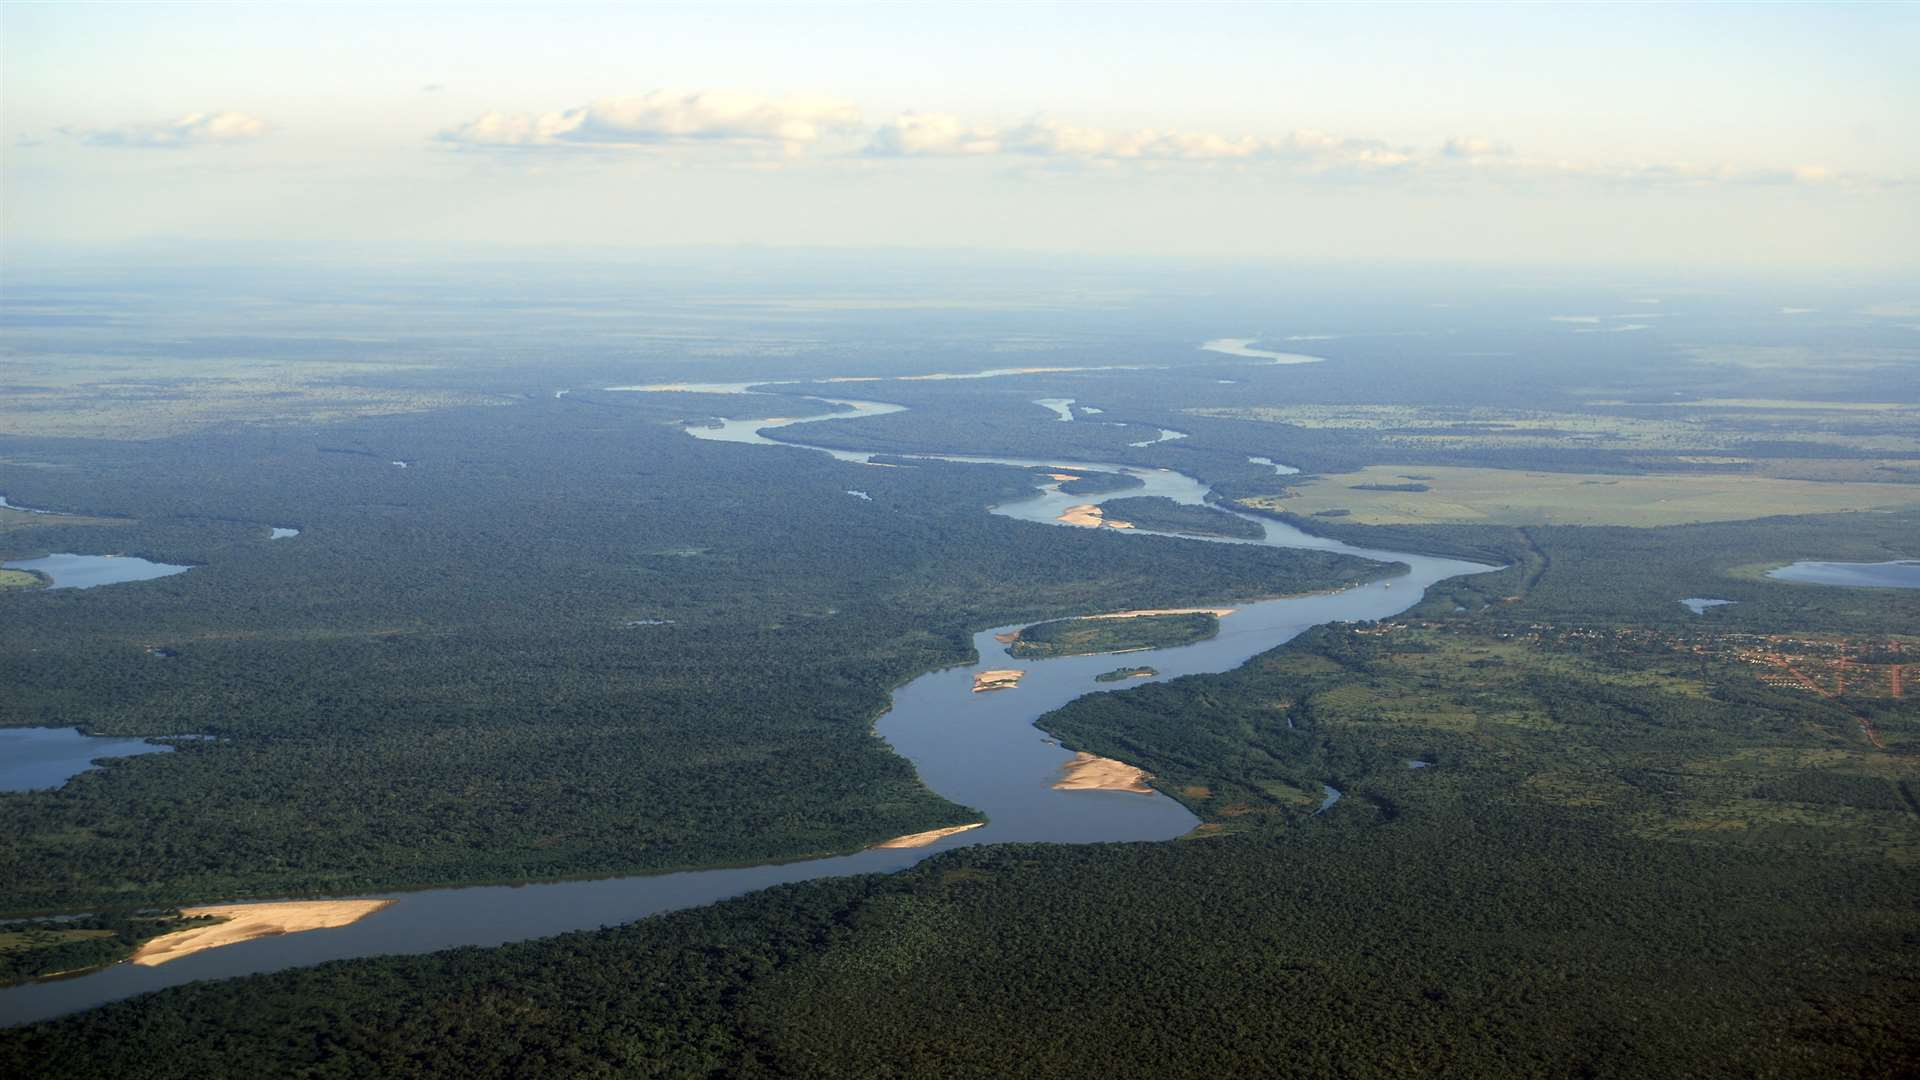 The Rio Negro in the Brazilian Amazon